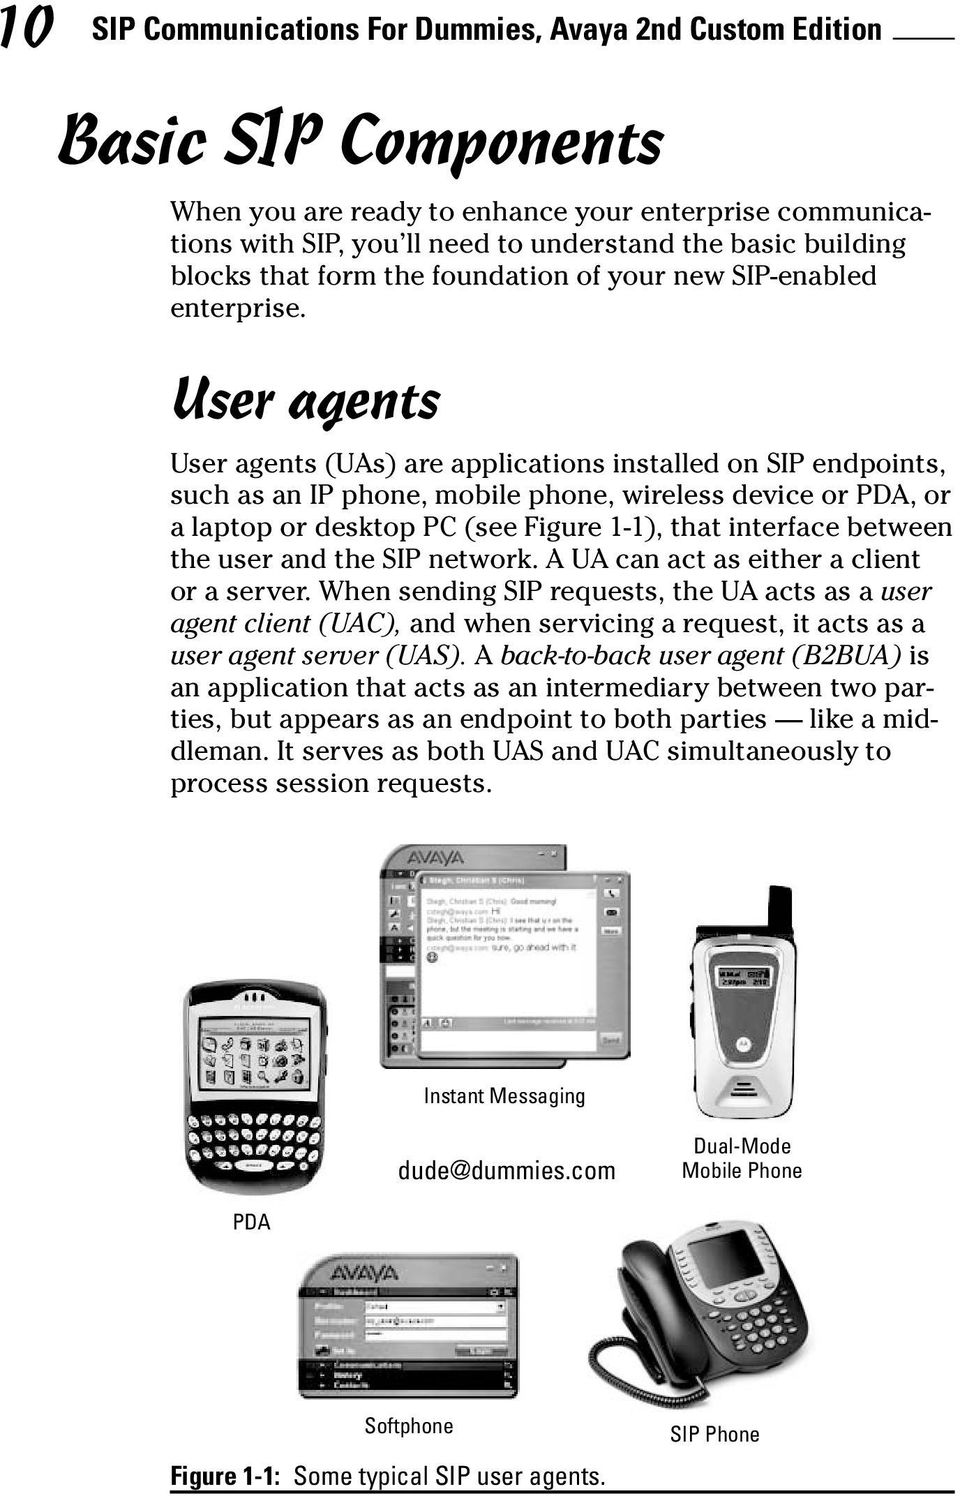 User agents User agents (UAs) are applications installed on SIP endpoints, such as an IP phone, mobile phone, wireless device or PDA, or a laptop or desktop PC (see Figure 1-1), that interface